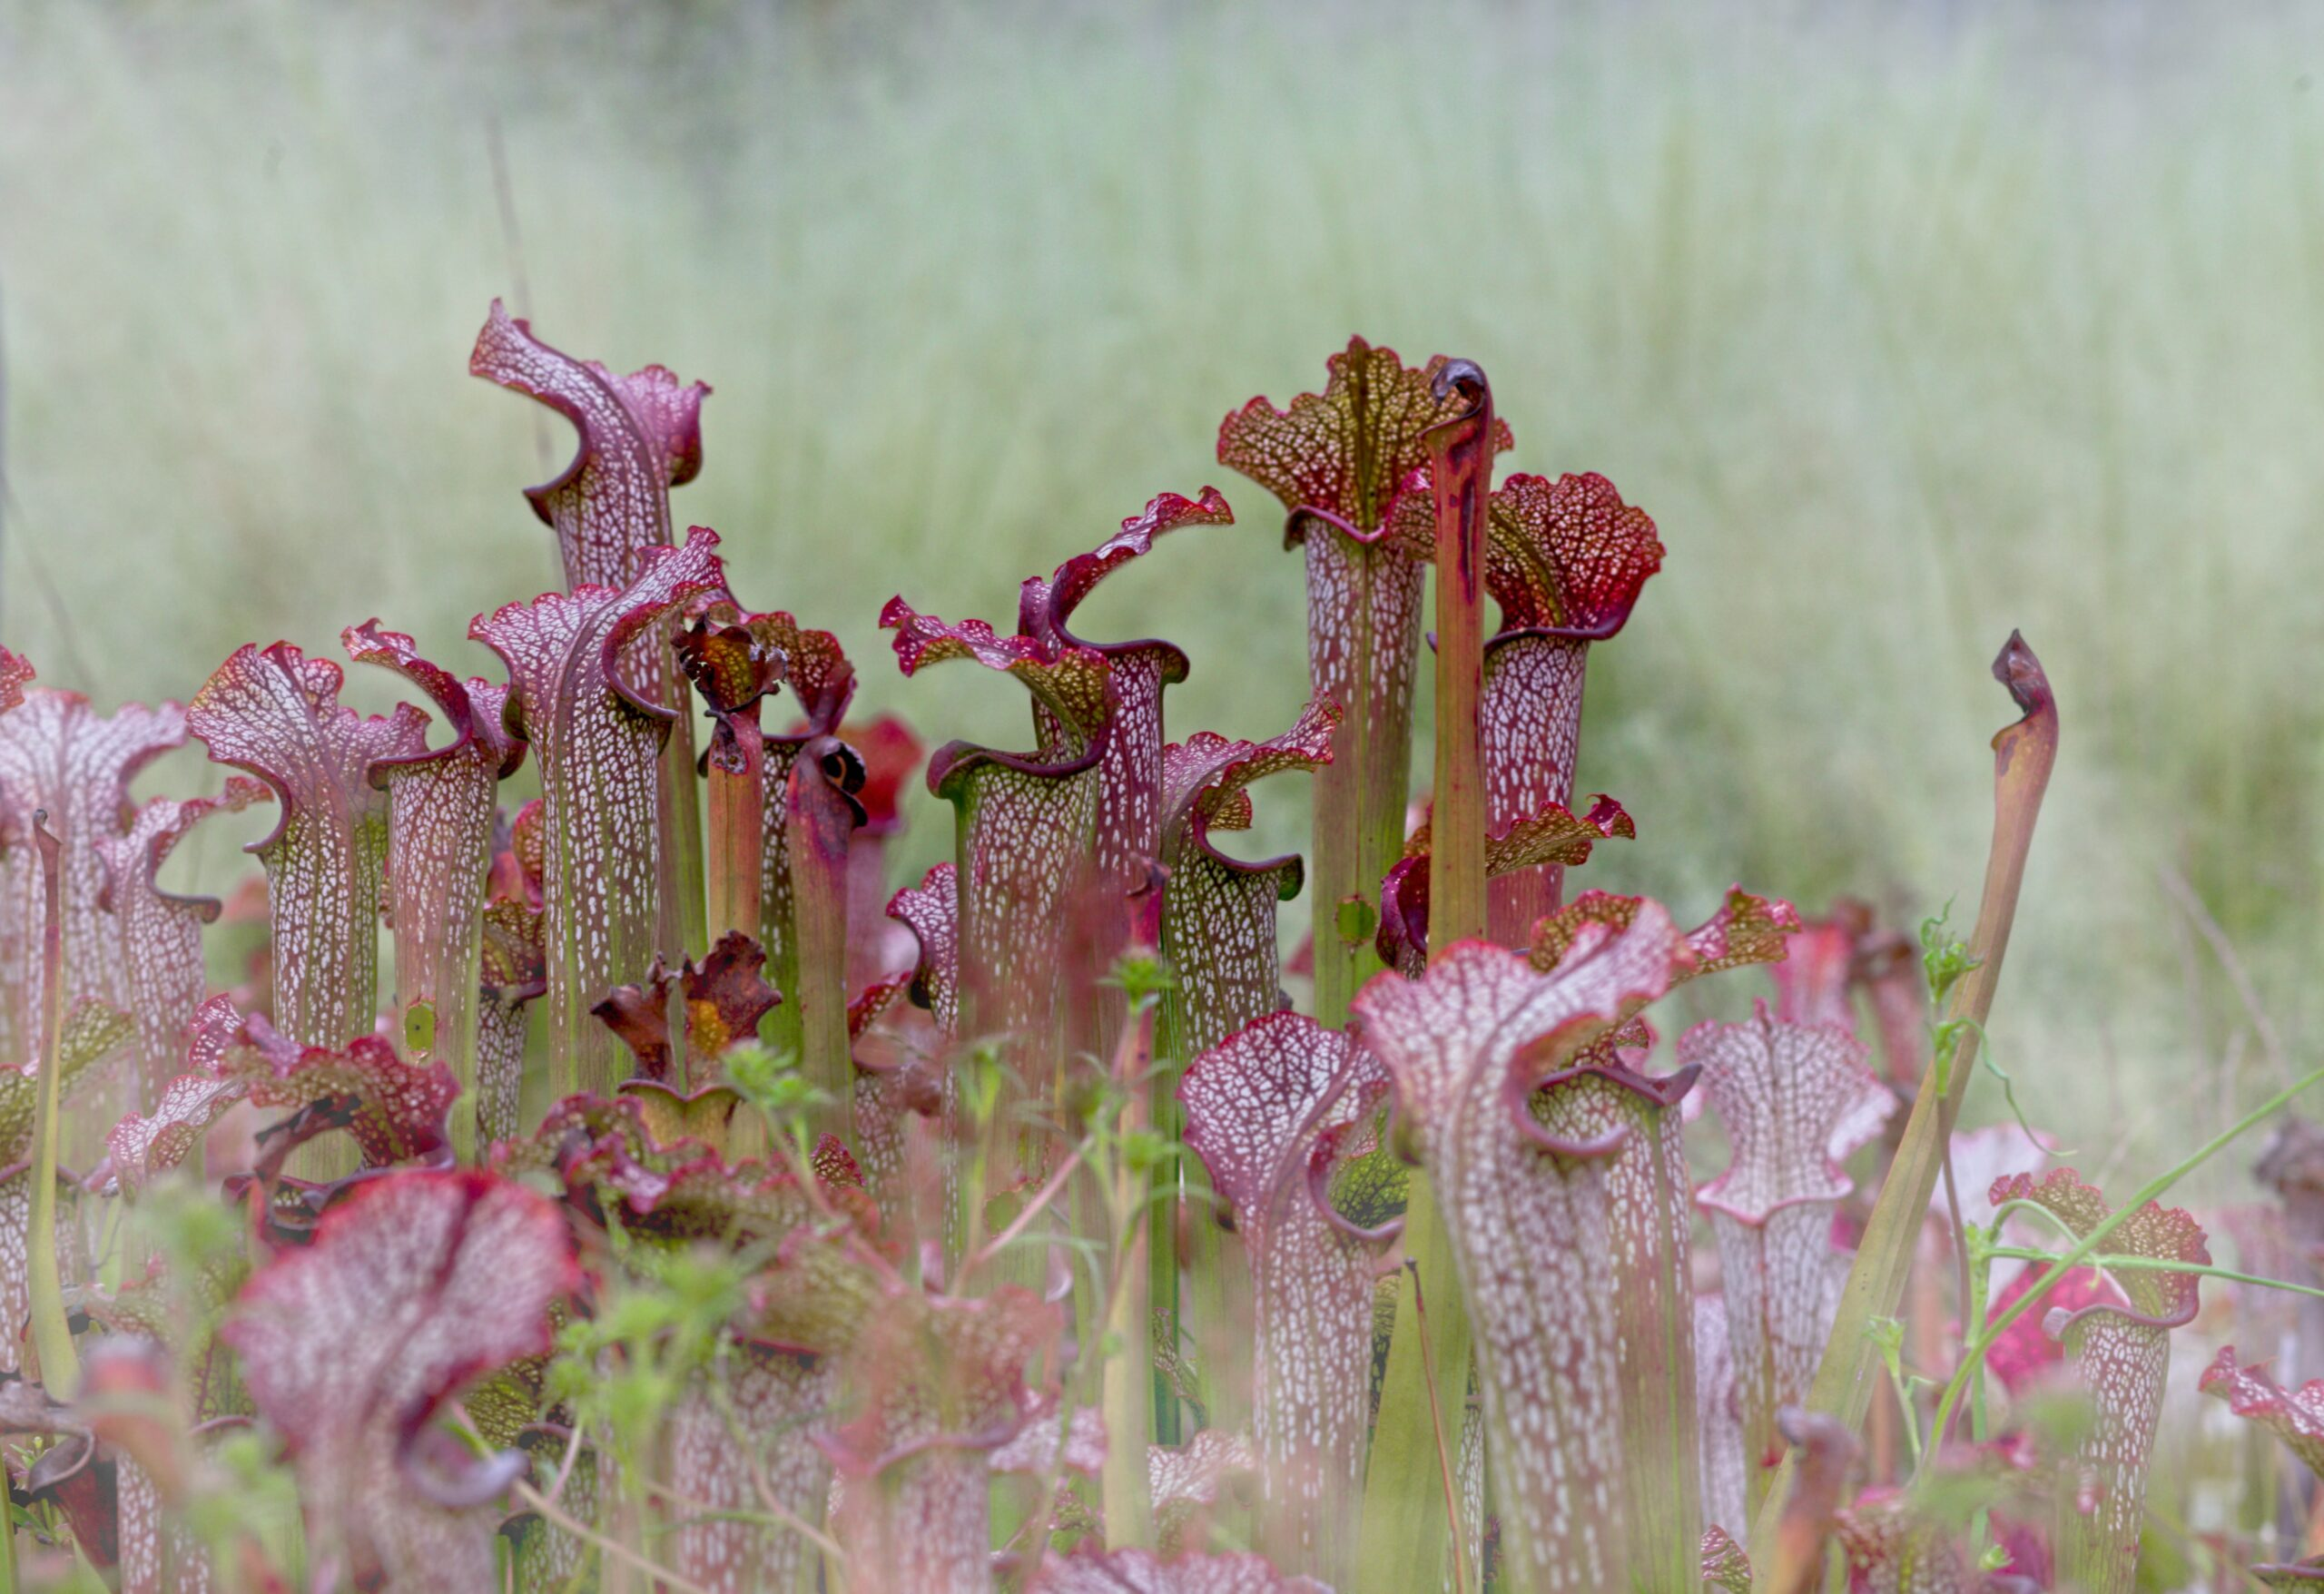 a clump of pitcher plants, found exclusively in wetland forests